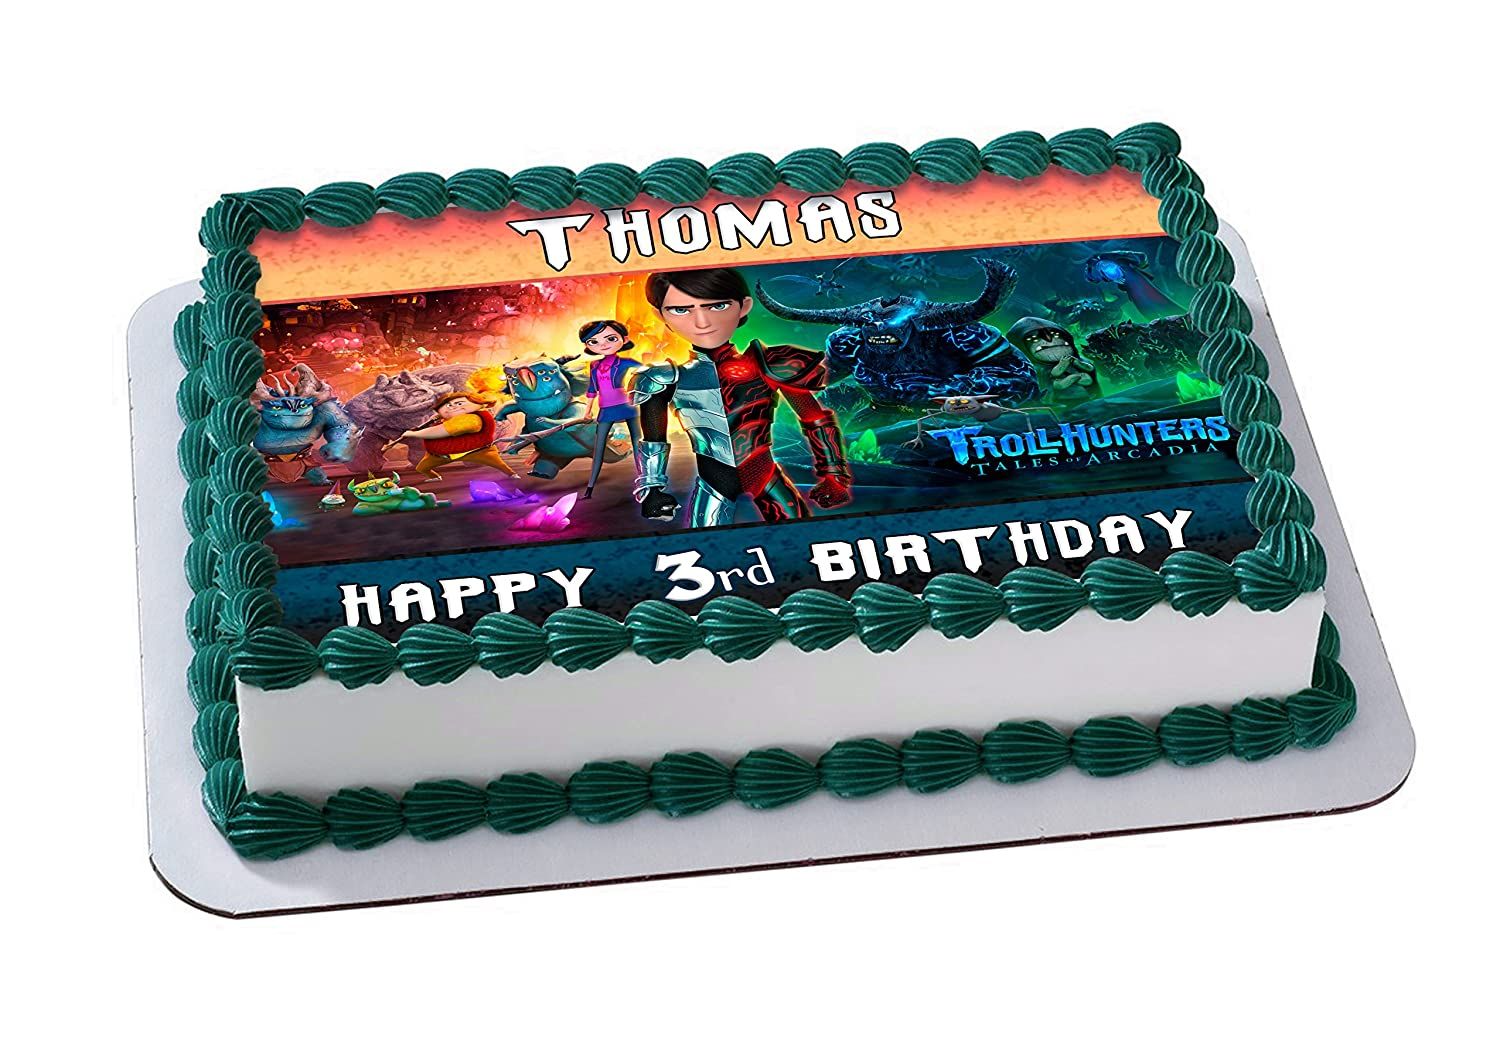 Trolls Hunters Edible Image Cake Topper Personalized Birthday 14